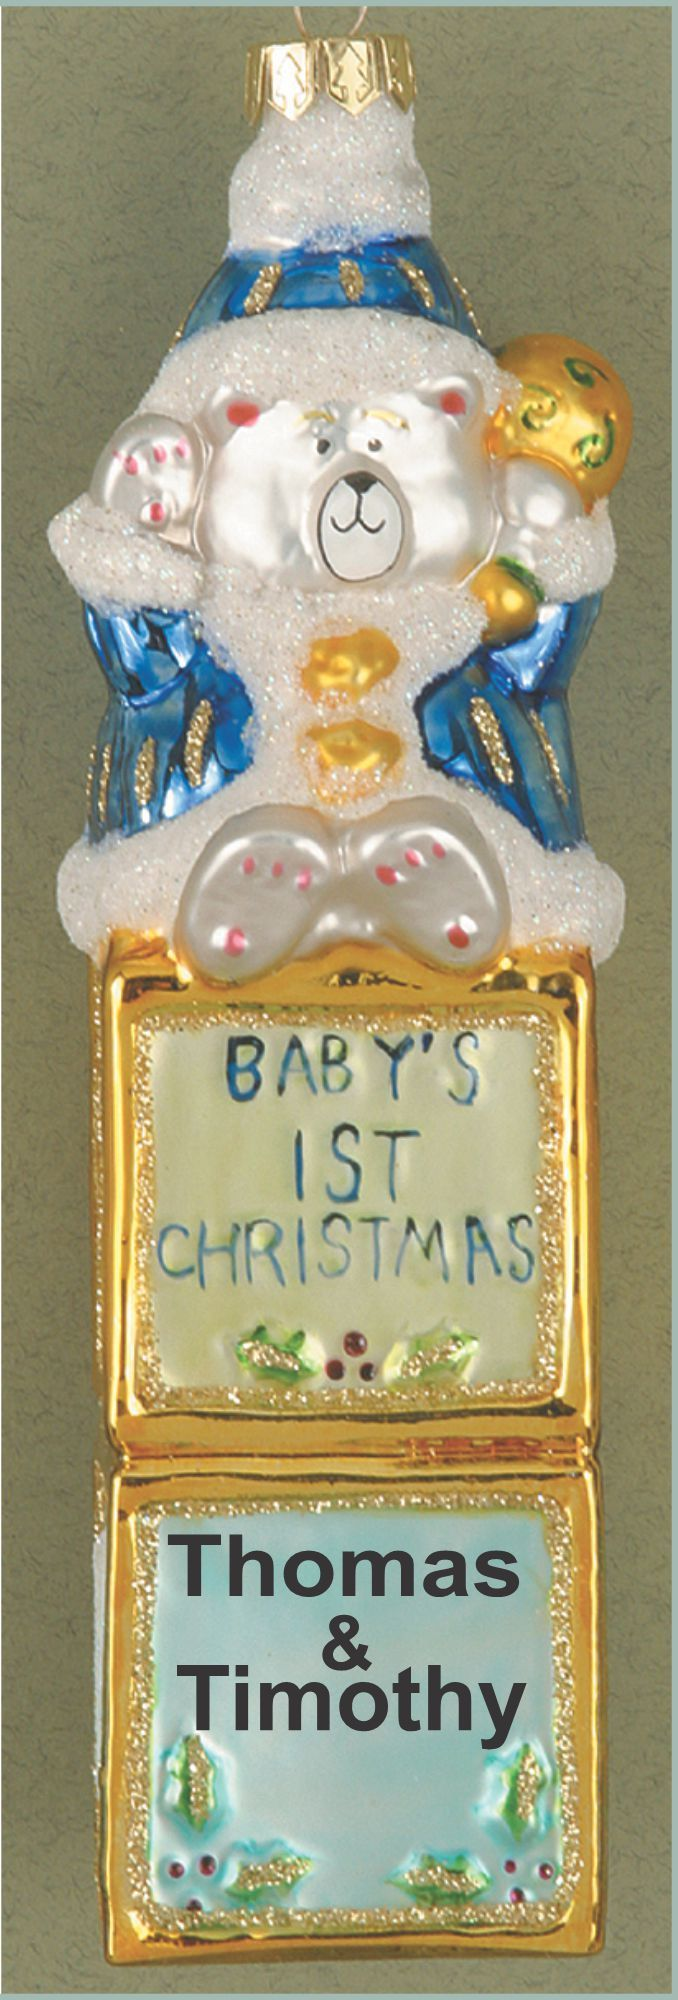 Blue Blocks Twins' First Glass Christmas Ornament Personalized by Russell Rhodes